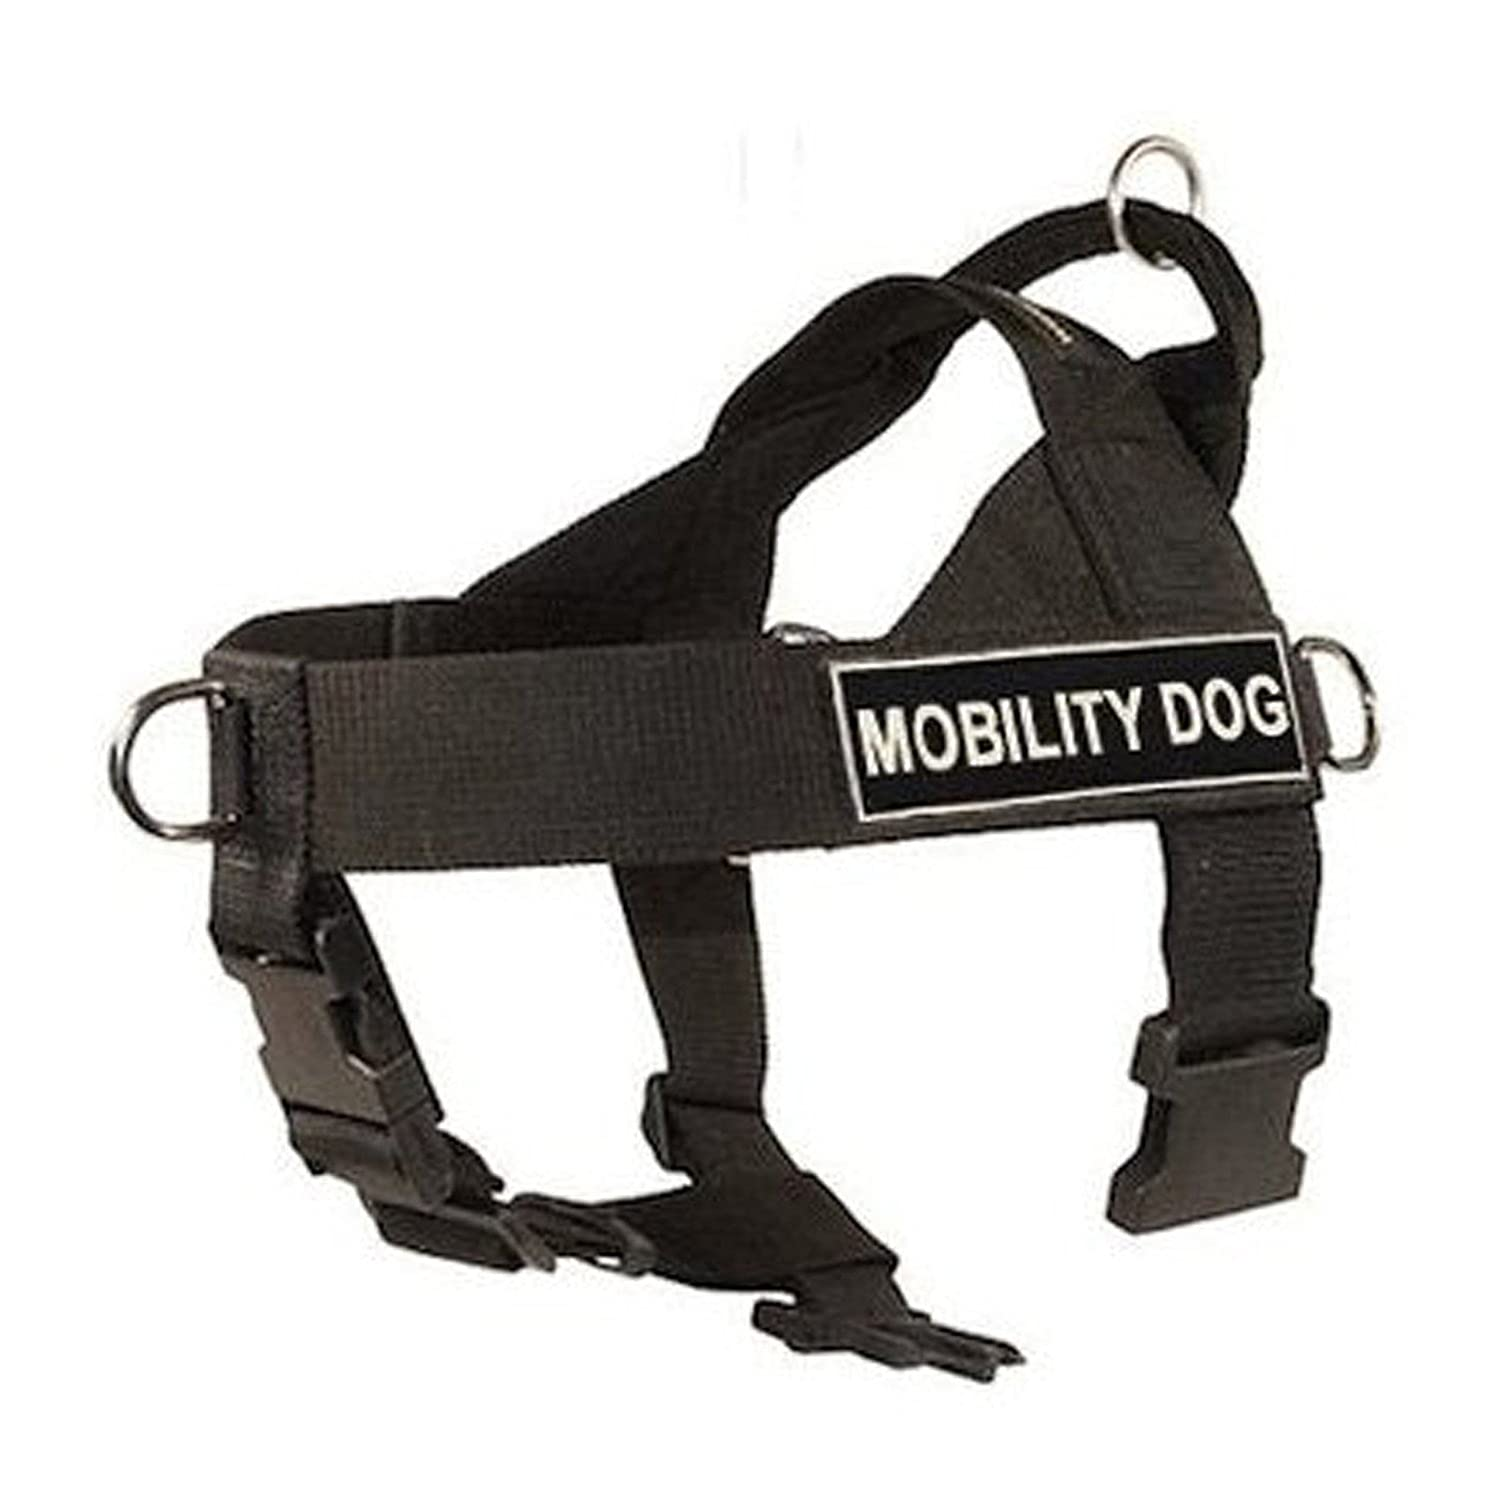 L Dean & Tyler Universal No Pull Dog Harness, Mobility Dog, Large, Fits Girth Size  31-Inch to 42-Inch, Black